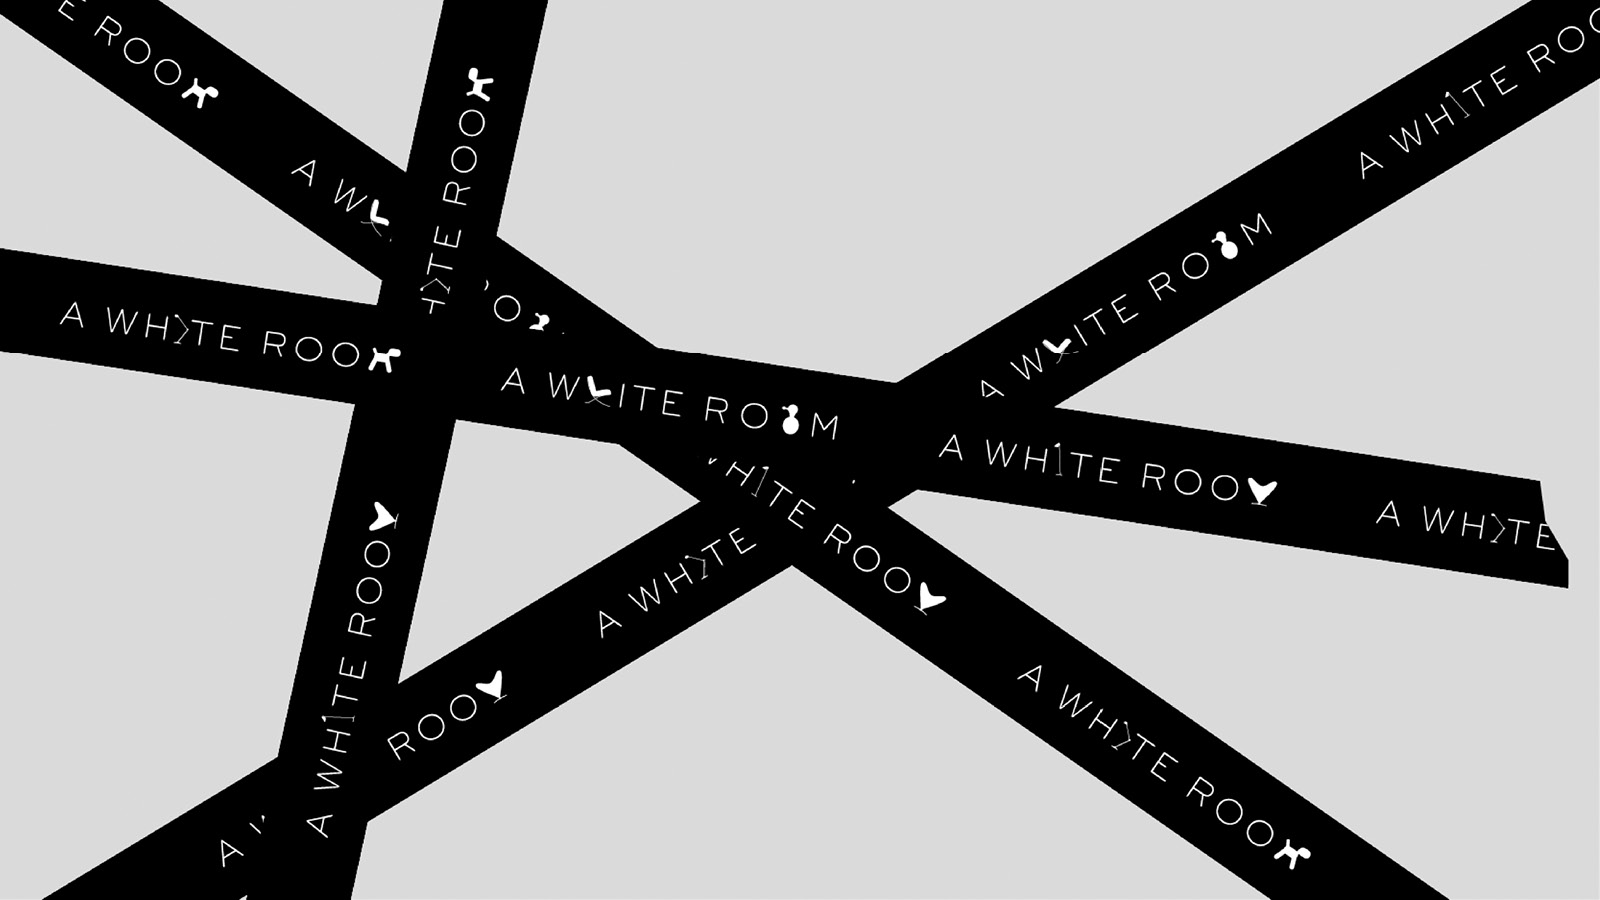 Thumbnail of A White Room